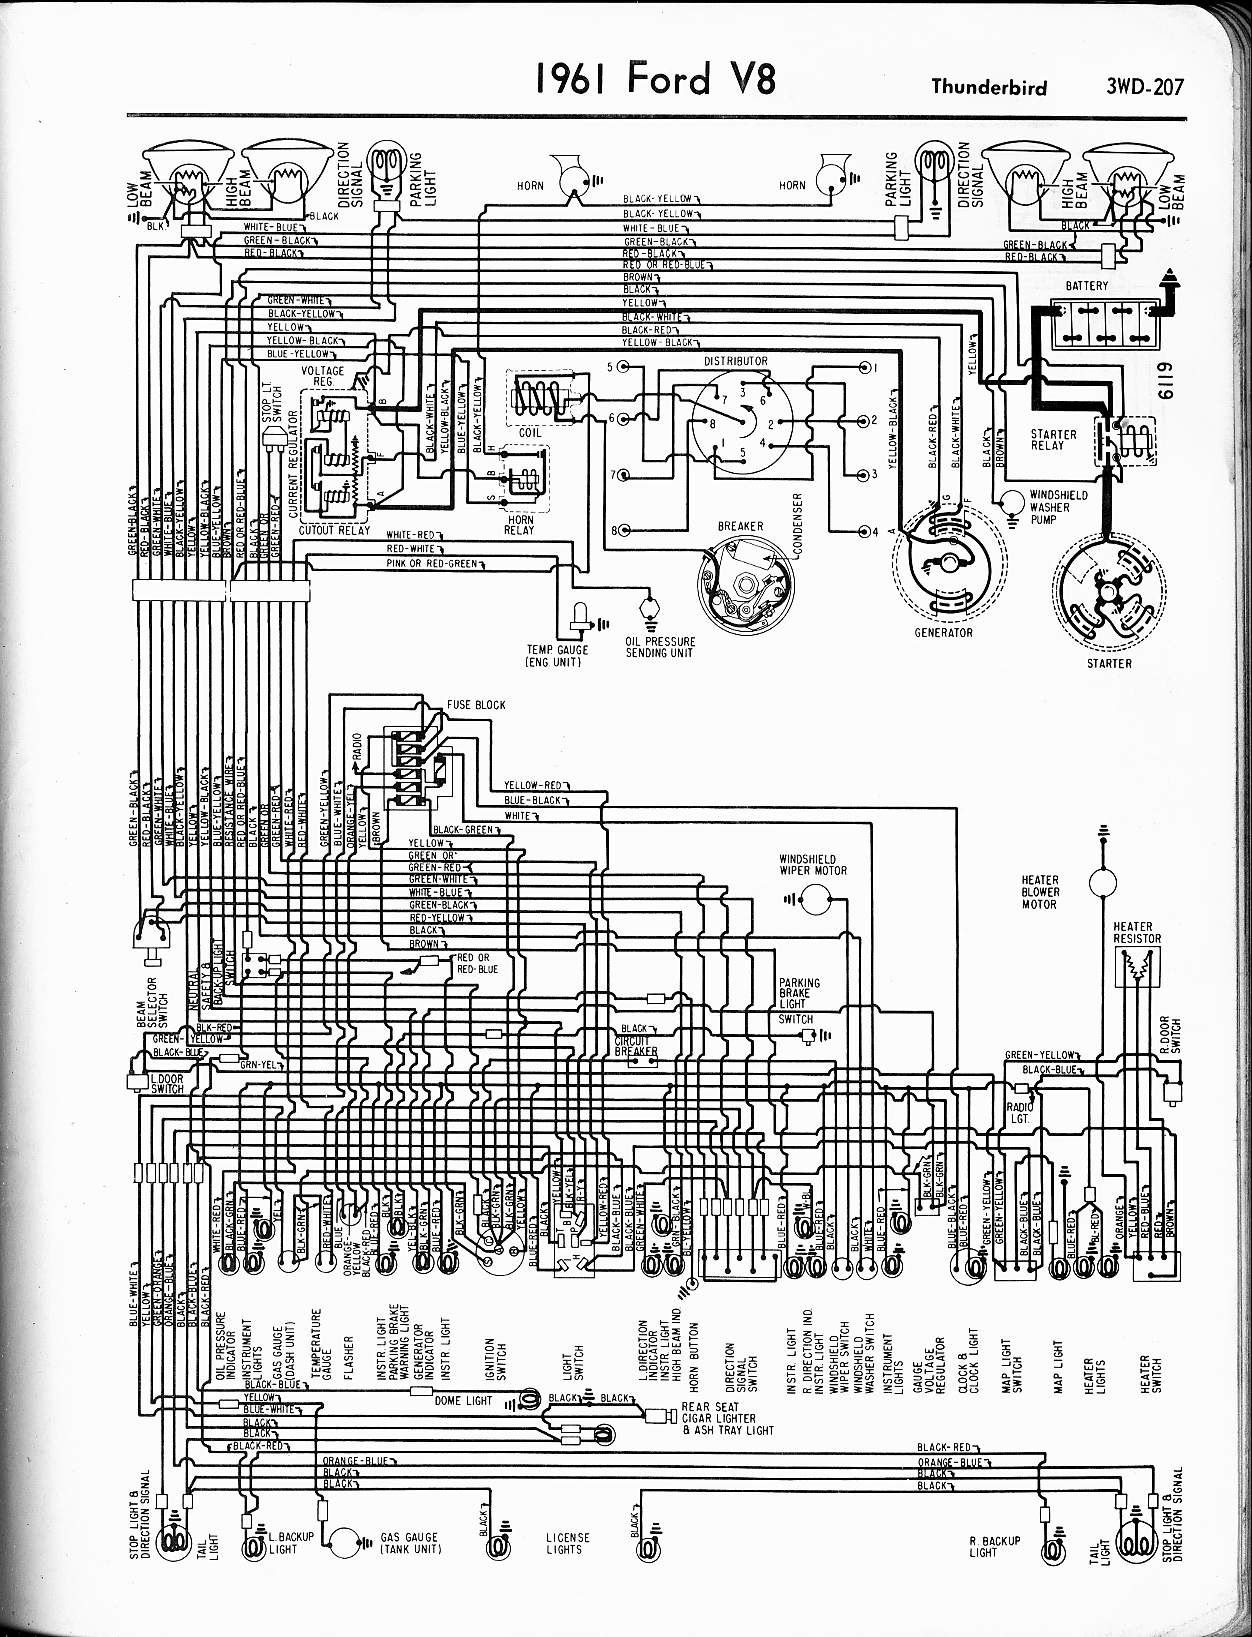 MWire5765 207 57 65 ford wiring diagrams 1968 ford wiring diagrams at arjmand.co